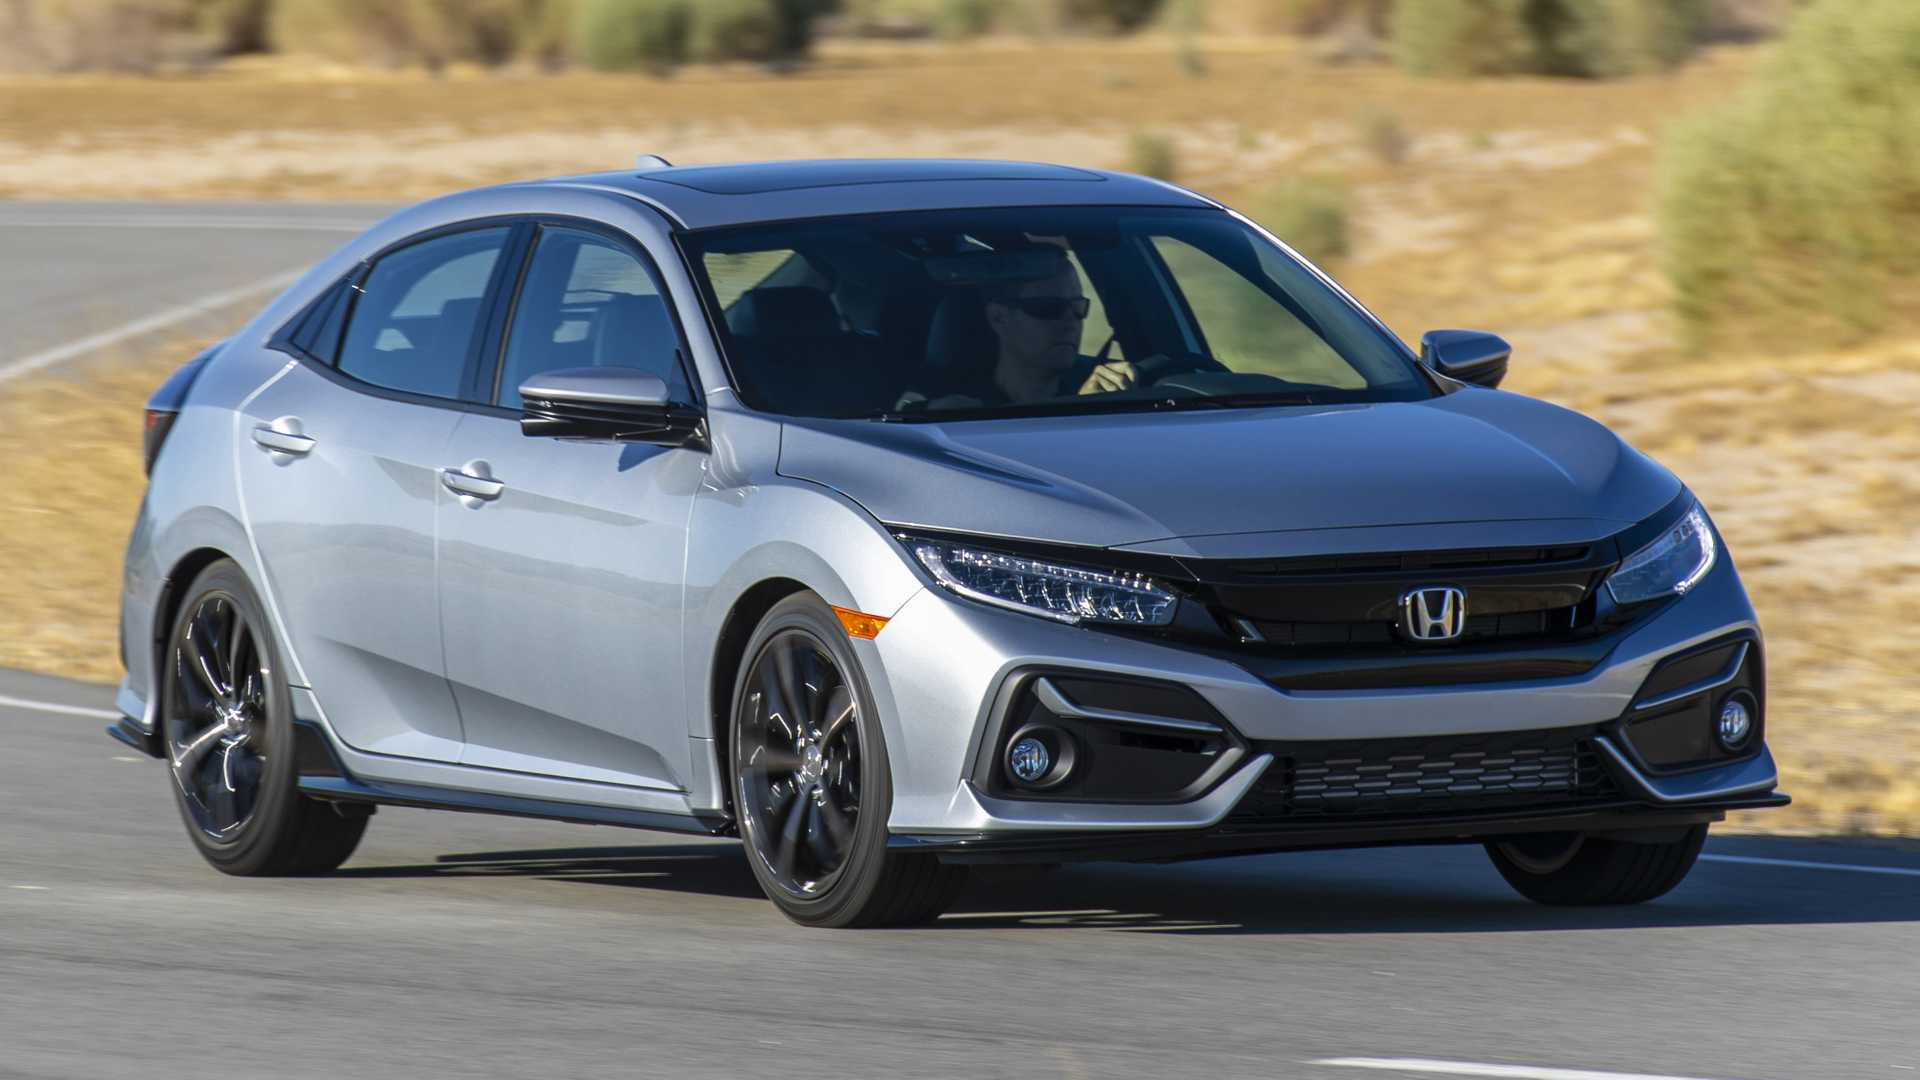 2020 Honda Civic Hatchback Gets Mild Update Small Price Bump